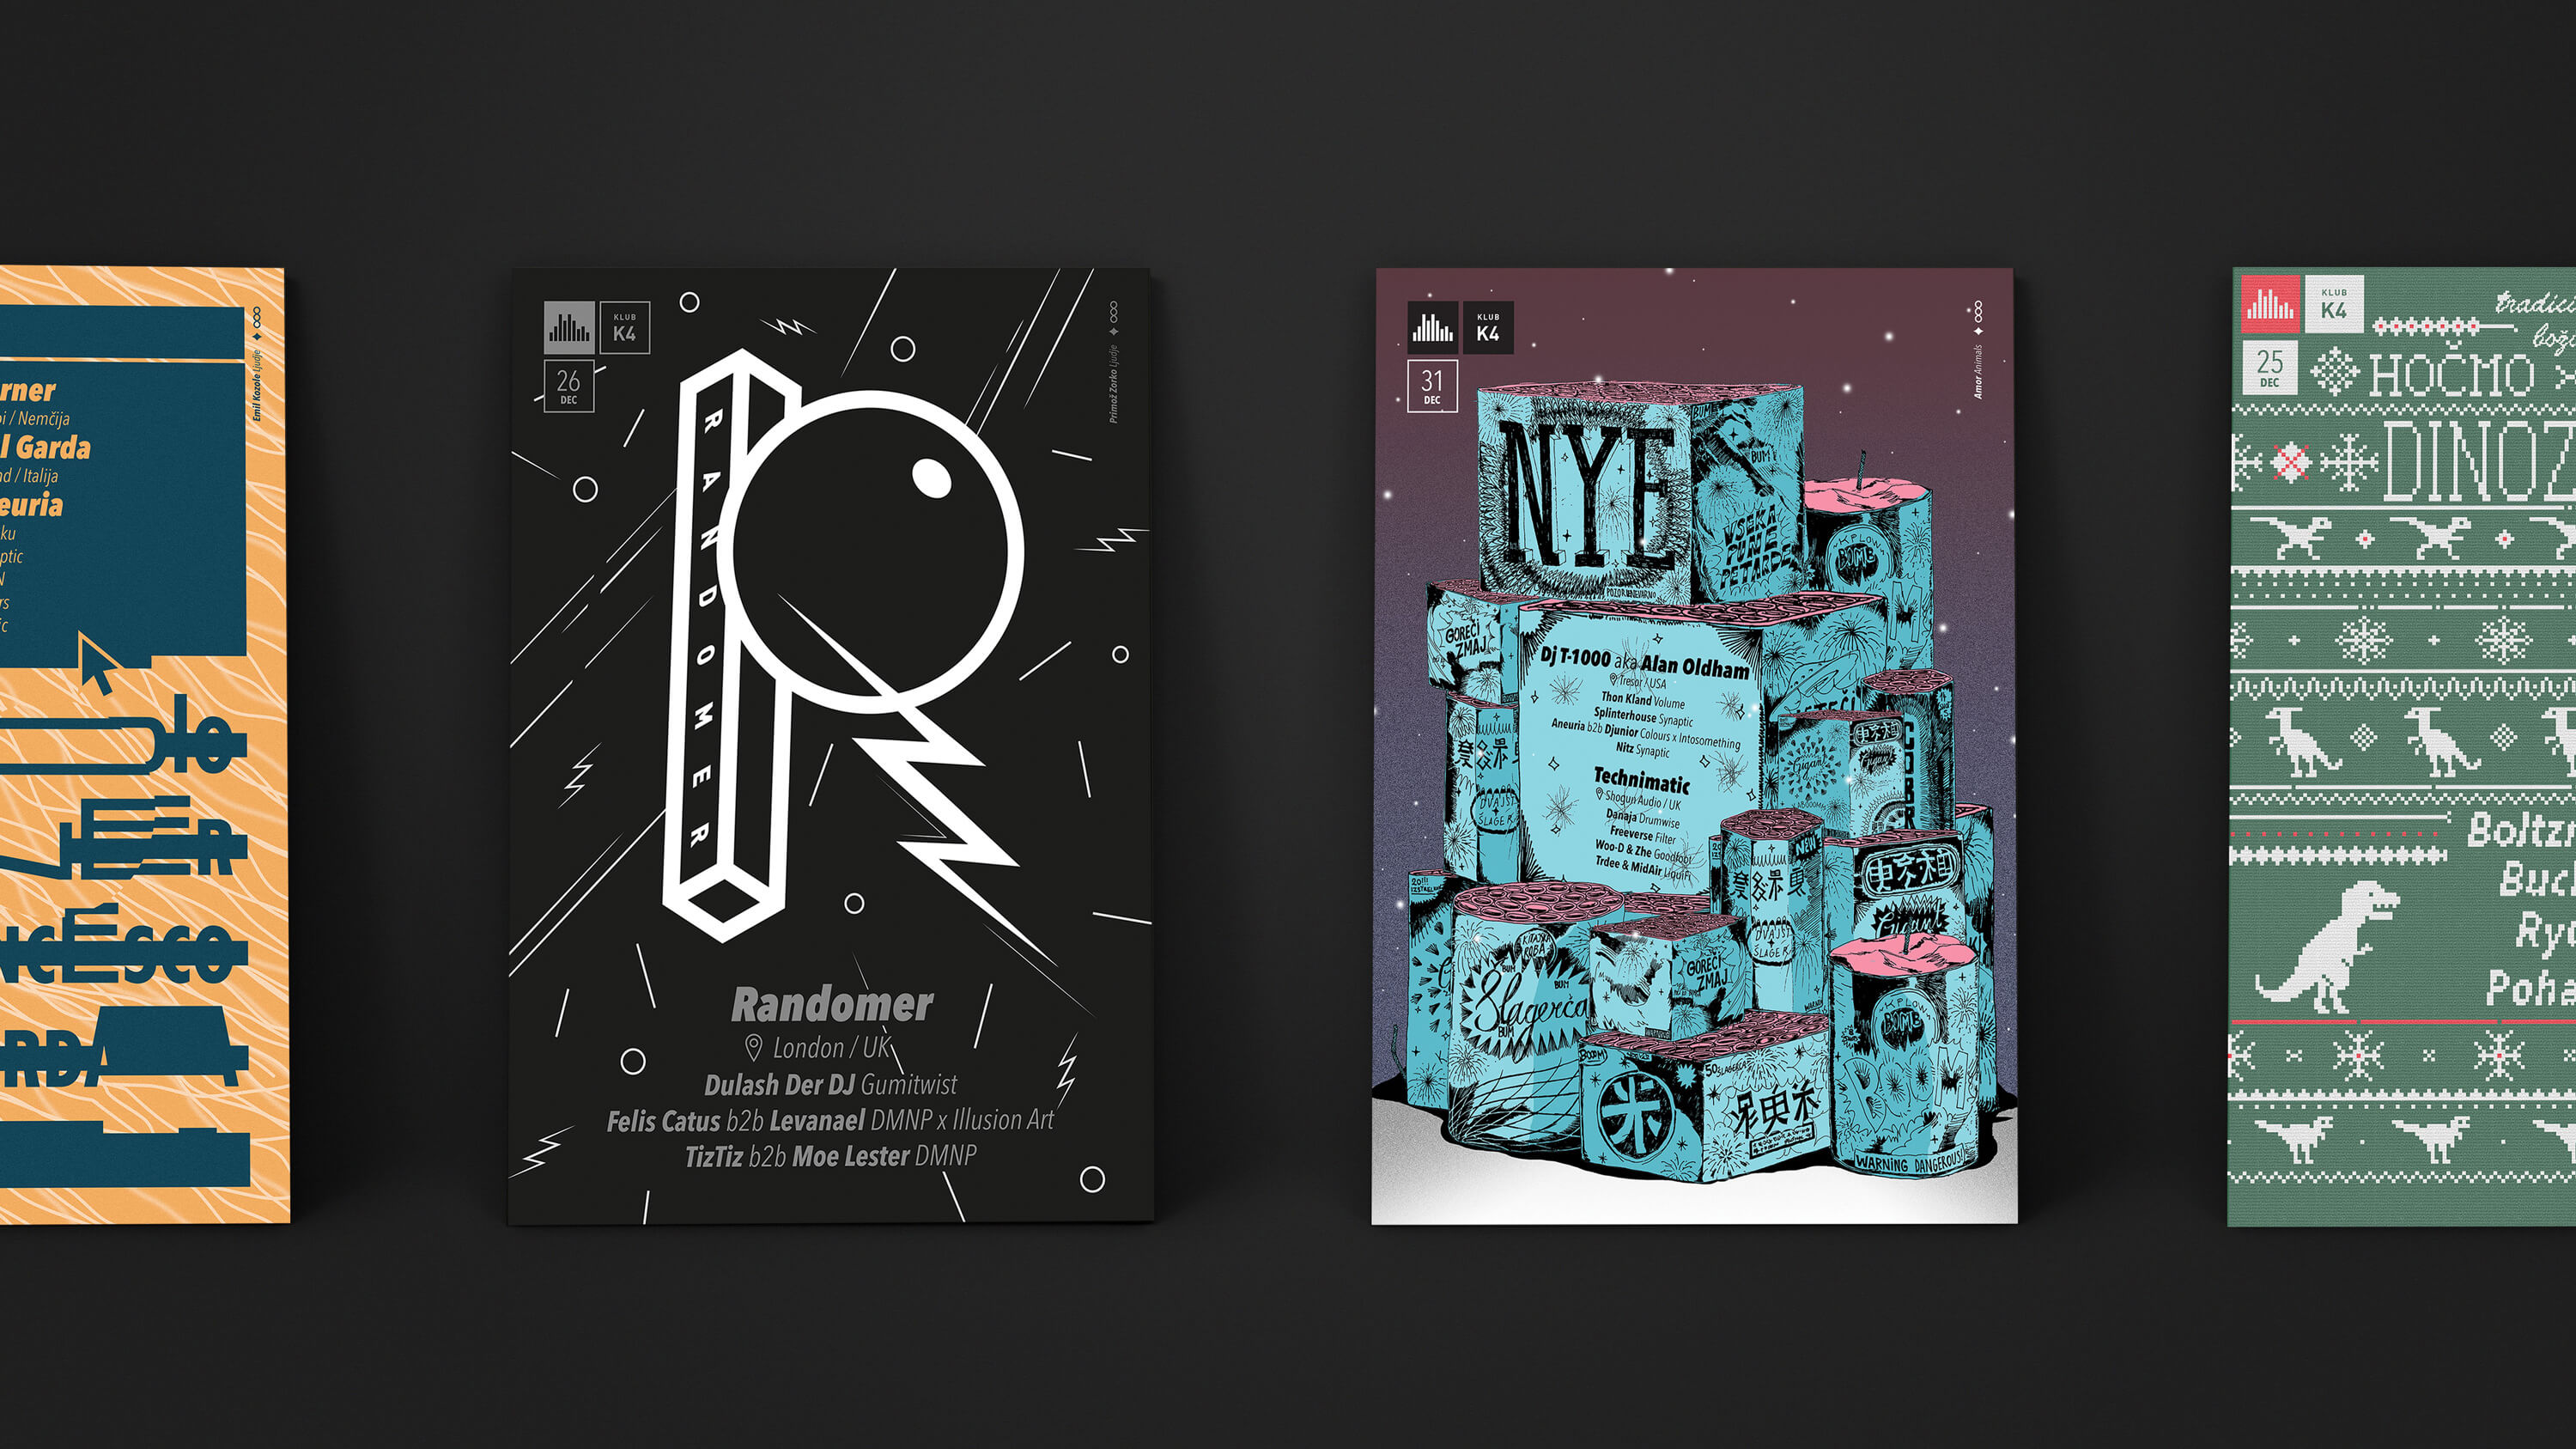 A group of posters designed for club K4.